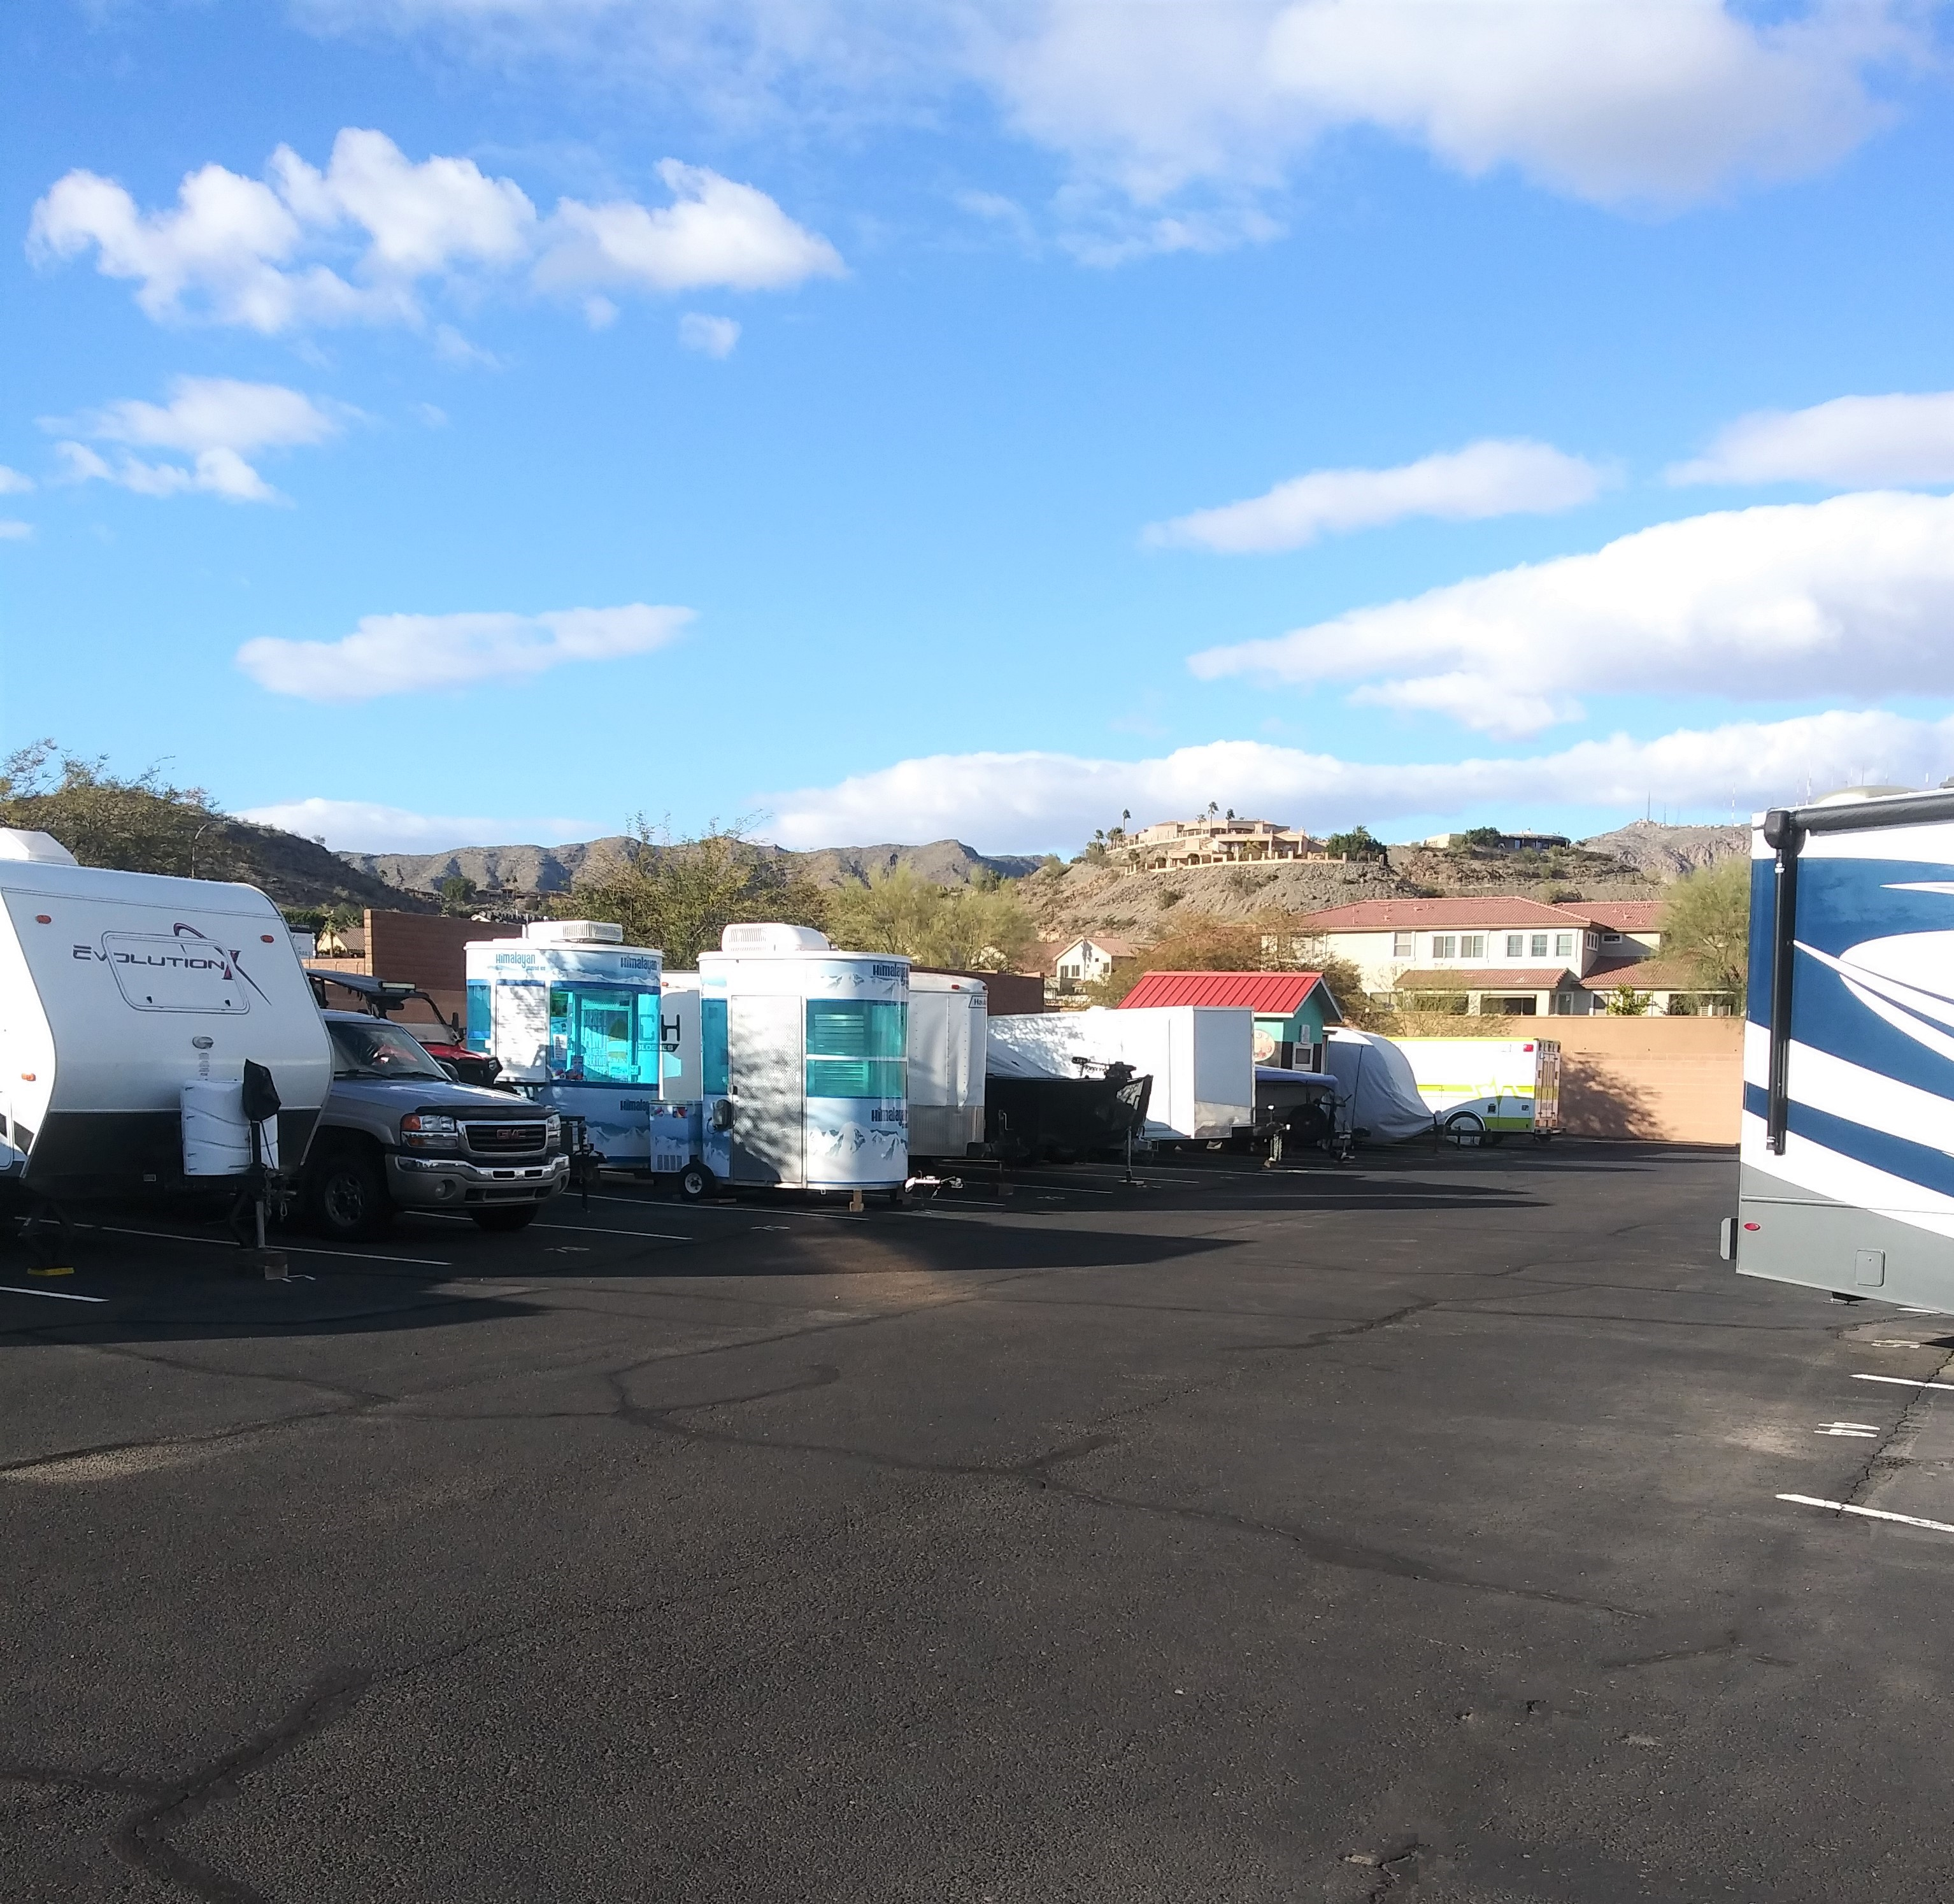 RV Storage in Phoenix, AZ